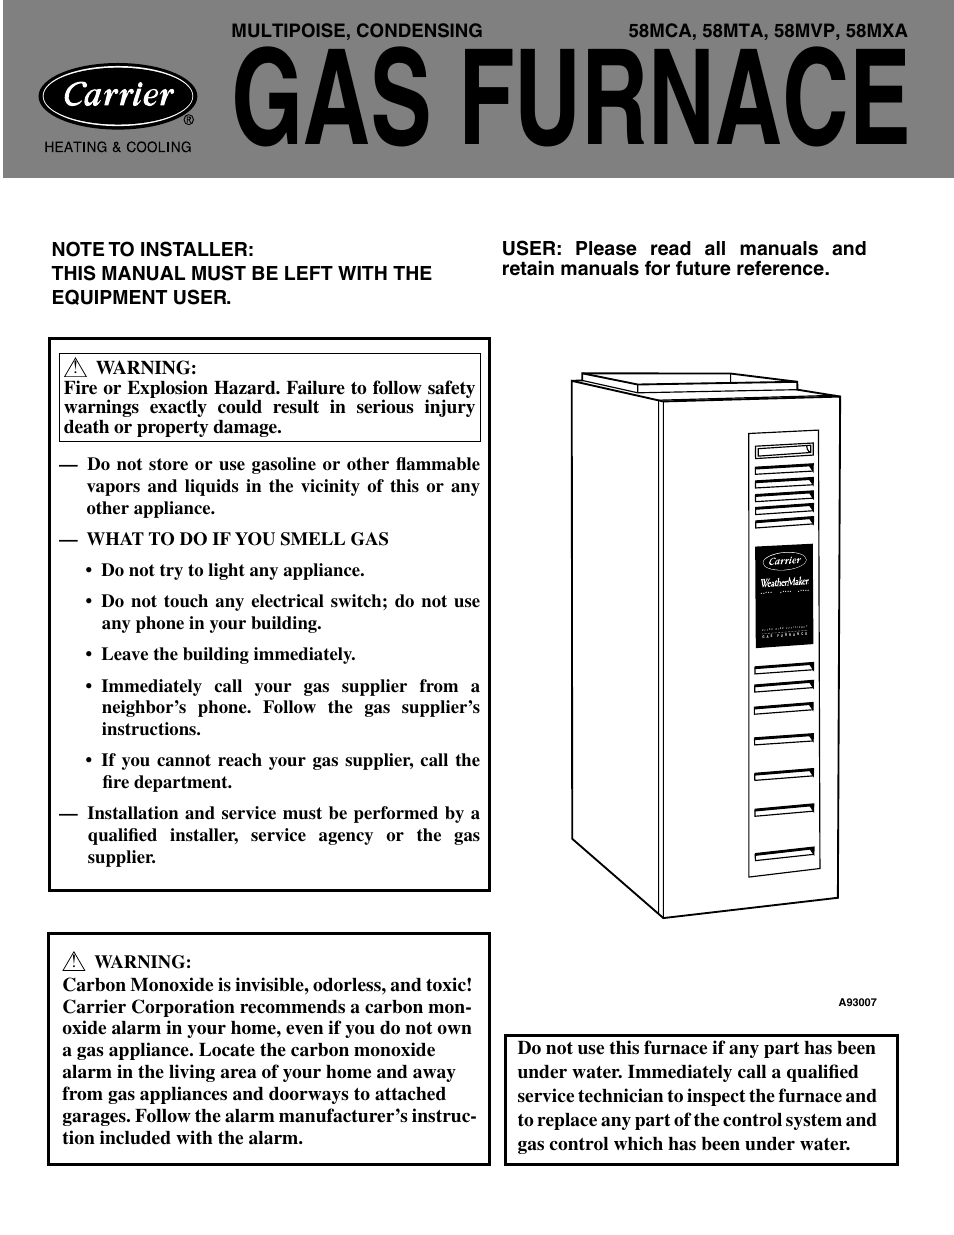 Carrier Weathermaker Infinity 58mca User Manual 12 Pages